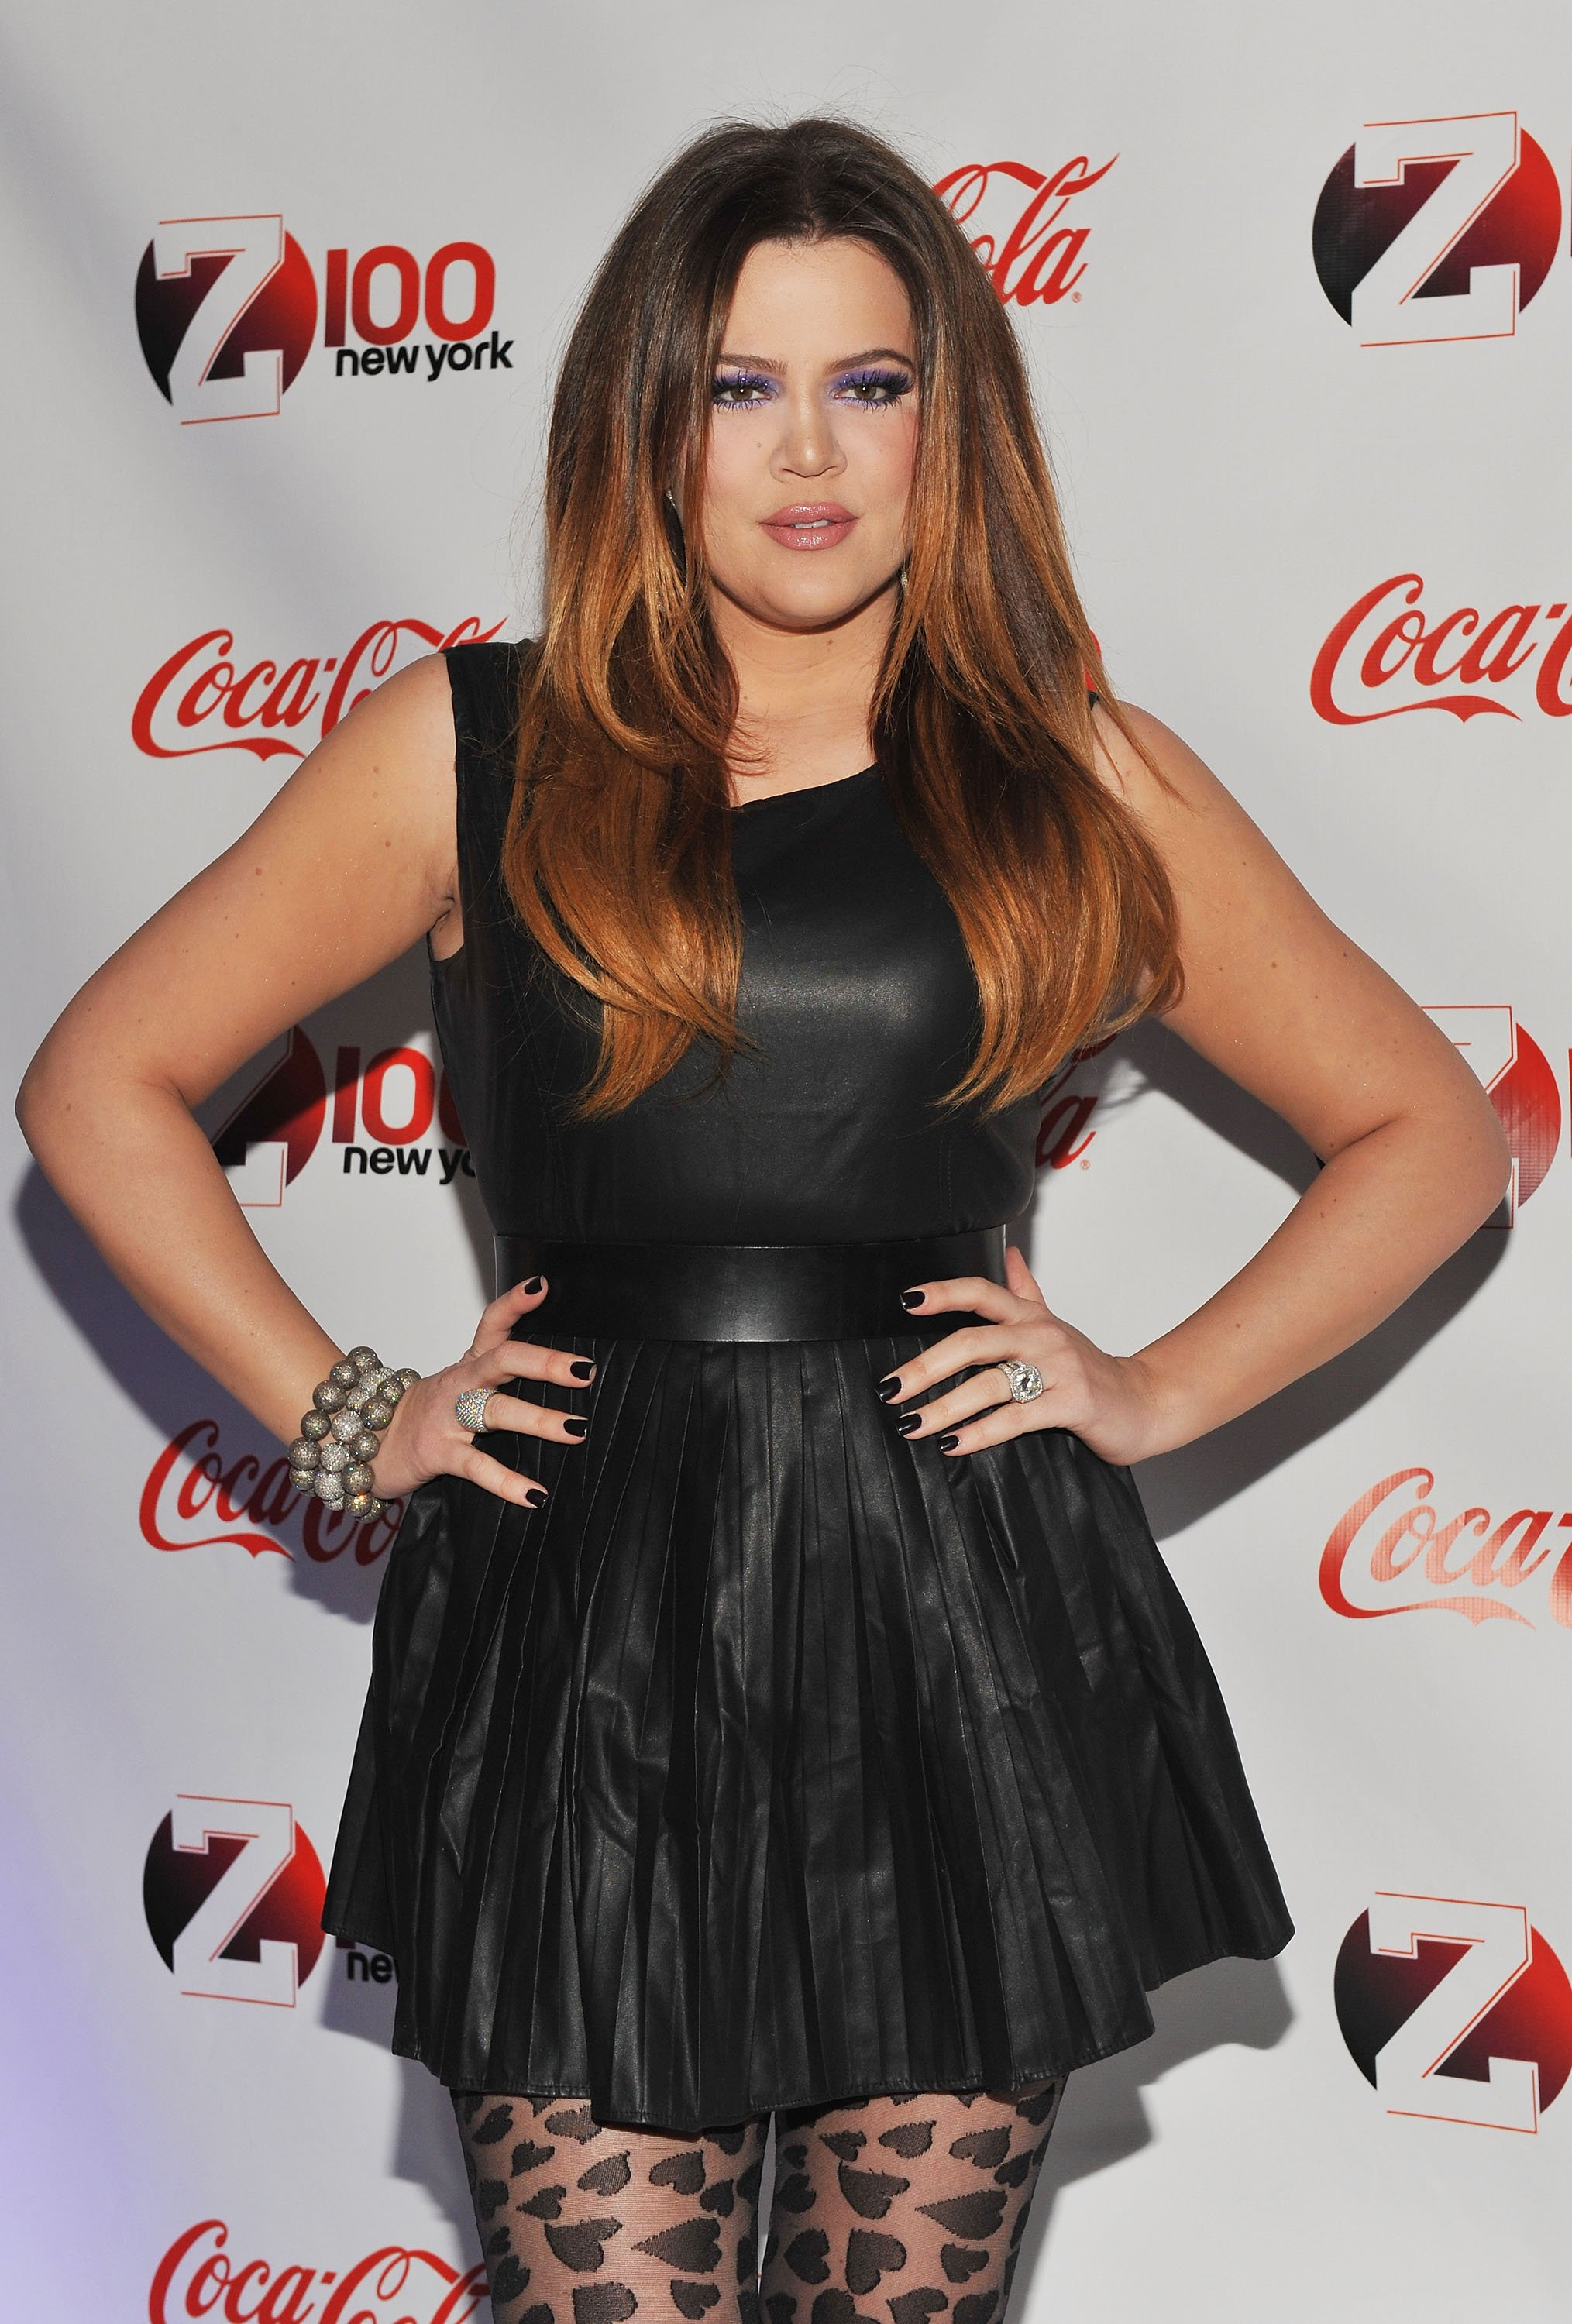 Khloé Kardashian attends the Z100 & Coca-Cola All Access lounge Jingle Ball pre-show in New York on December 9, 2011 | Photo: Getty Images